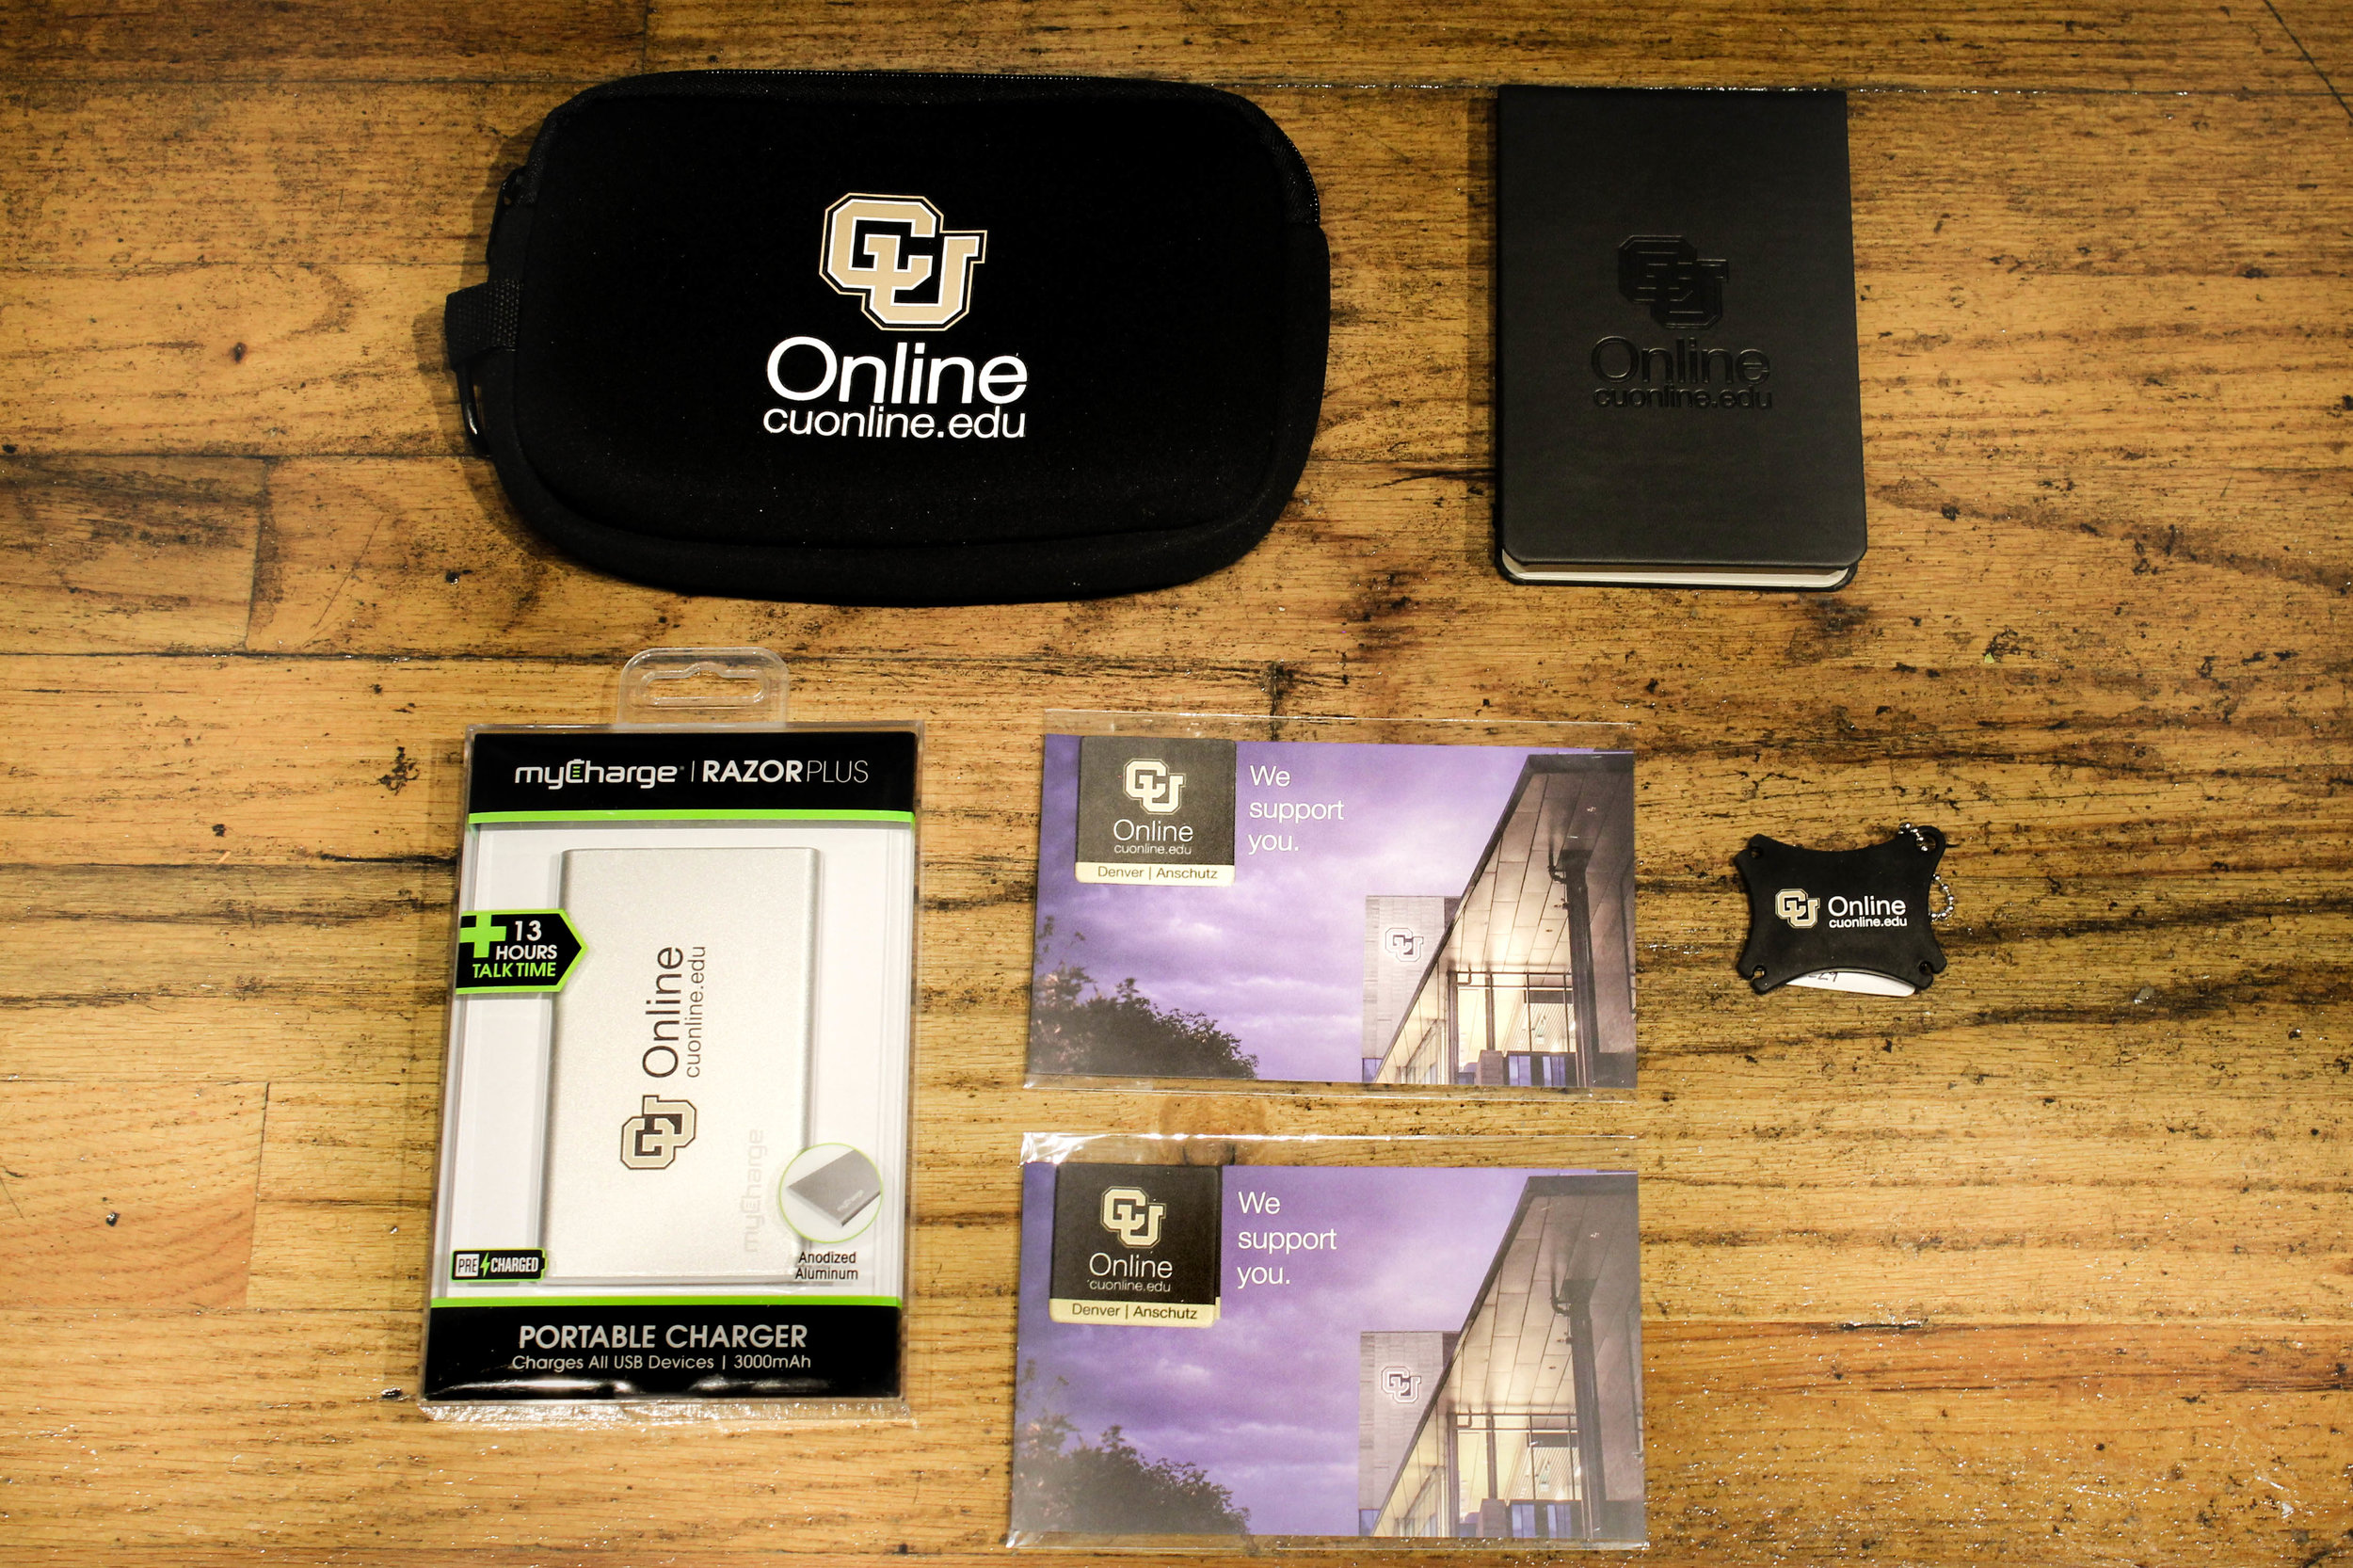 Well thought out products that support CU Online's brand image.